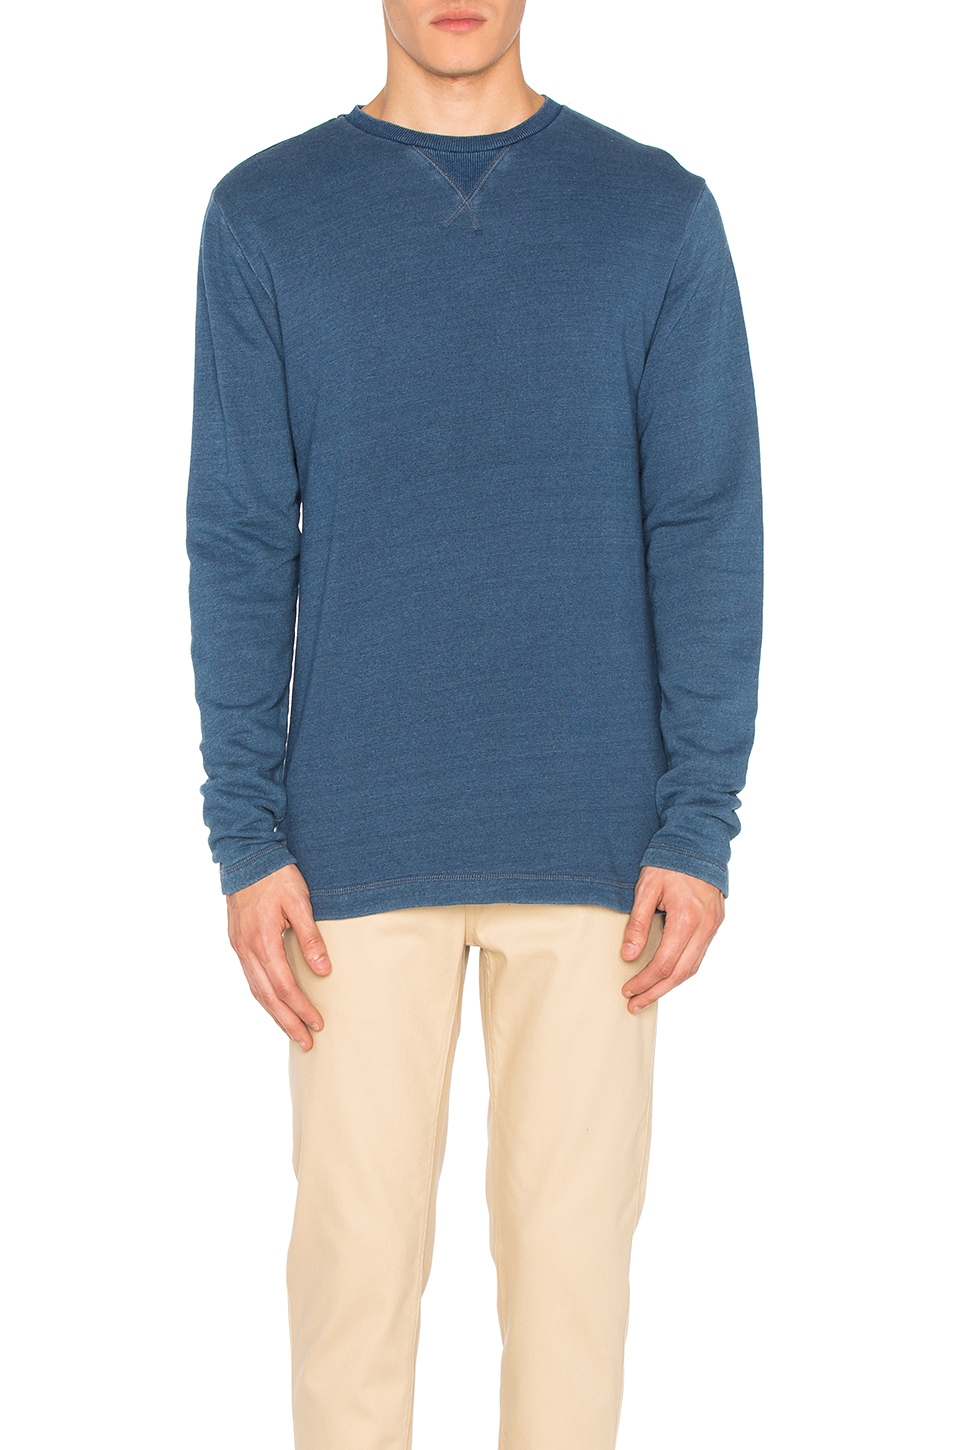 Steve Pullover by Publish